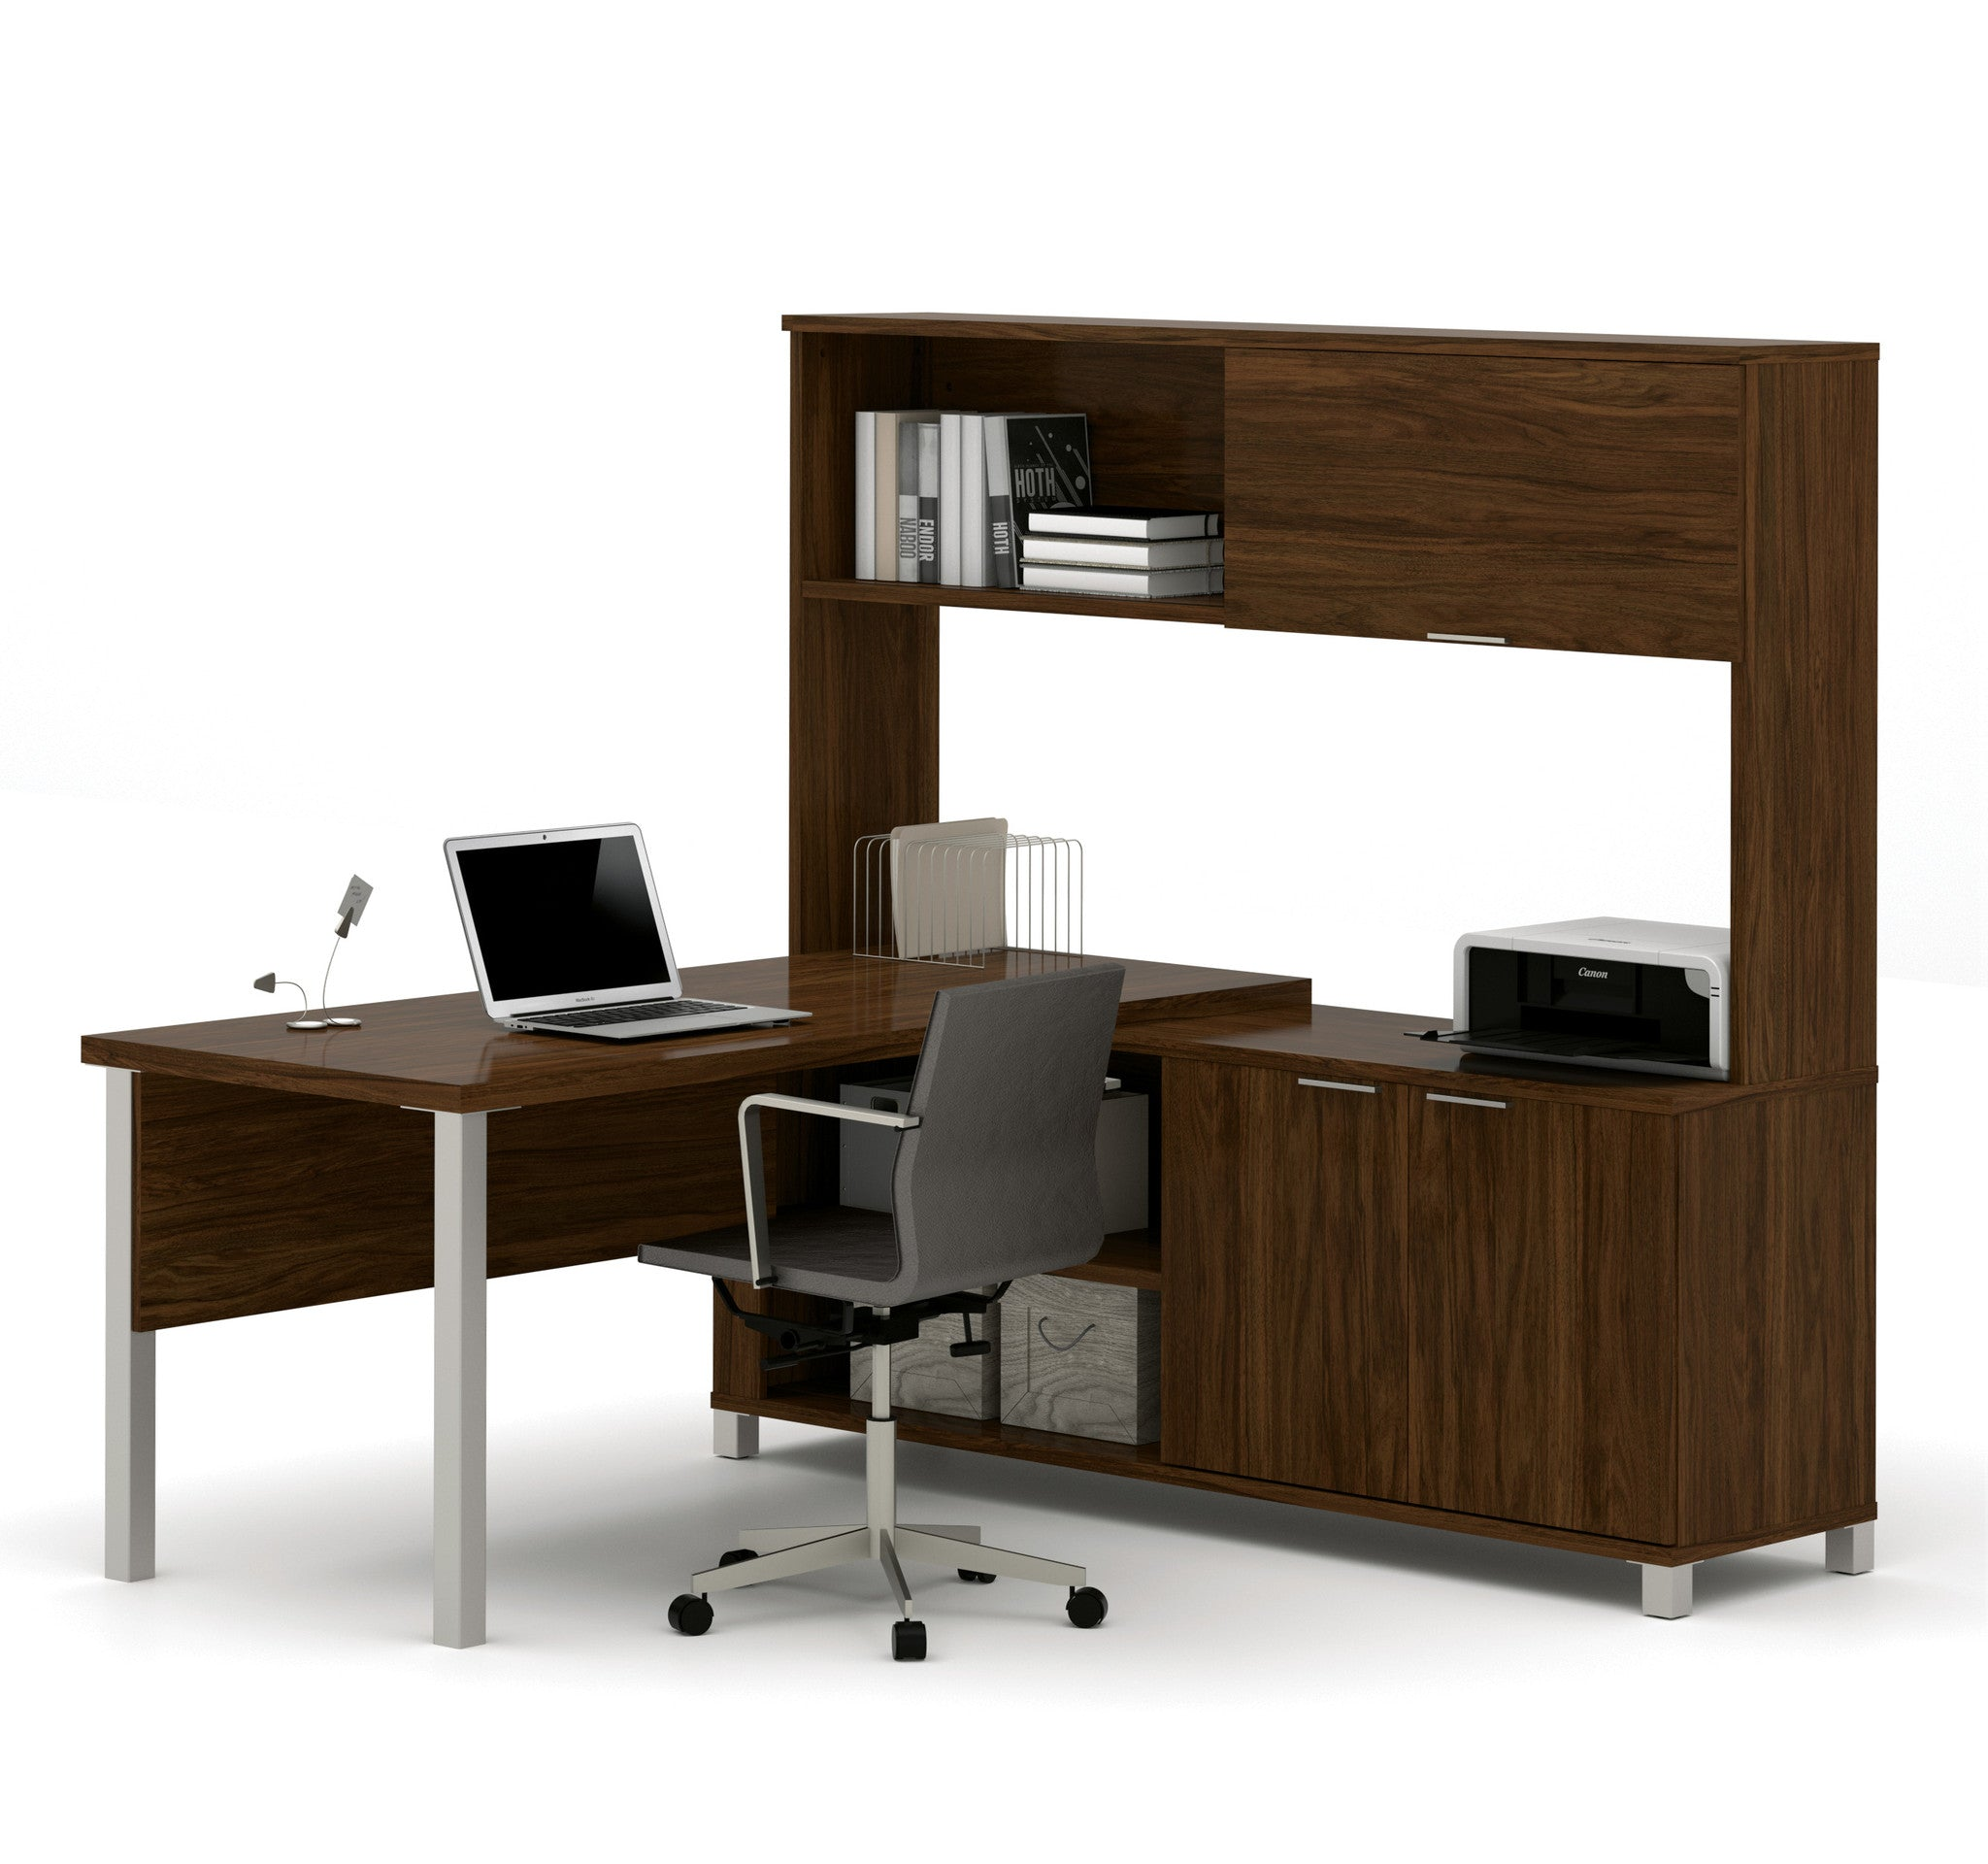 office modern d workstation computer wood table l home tribesigns for shaped pin desk x metal salt large h corner oak study